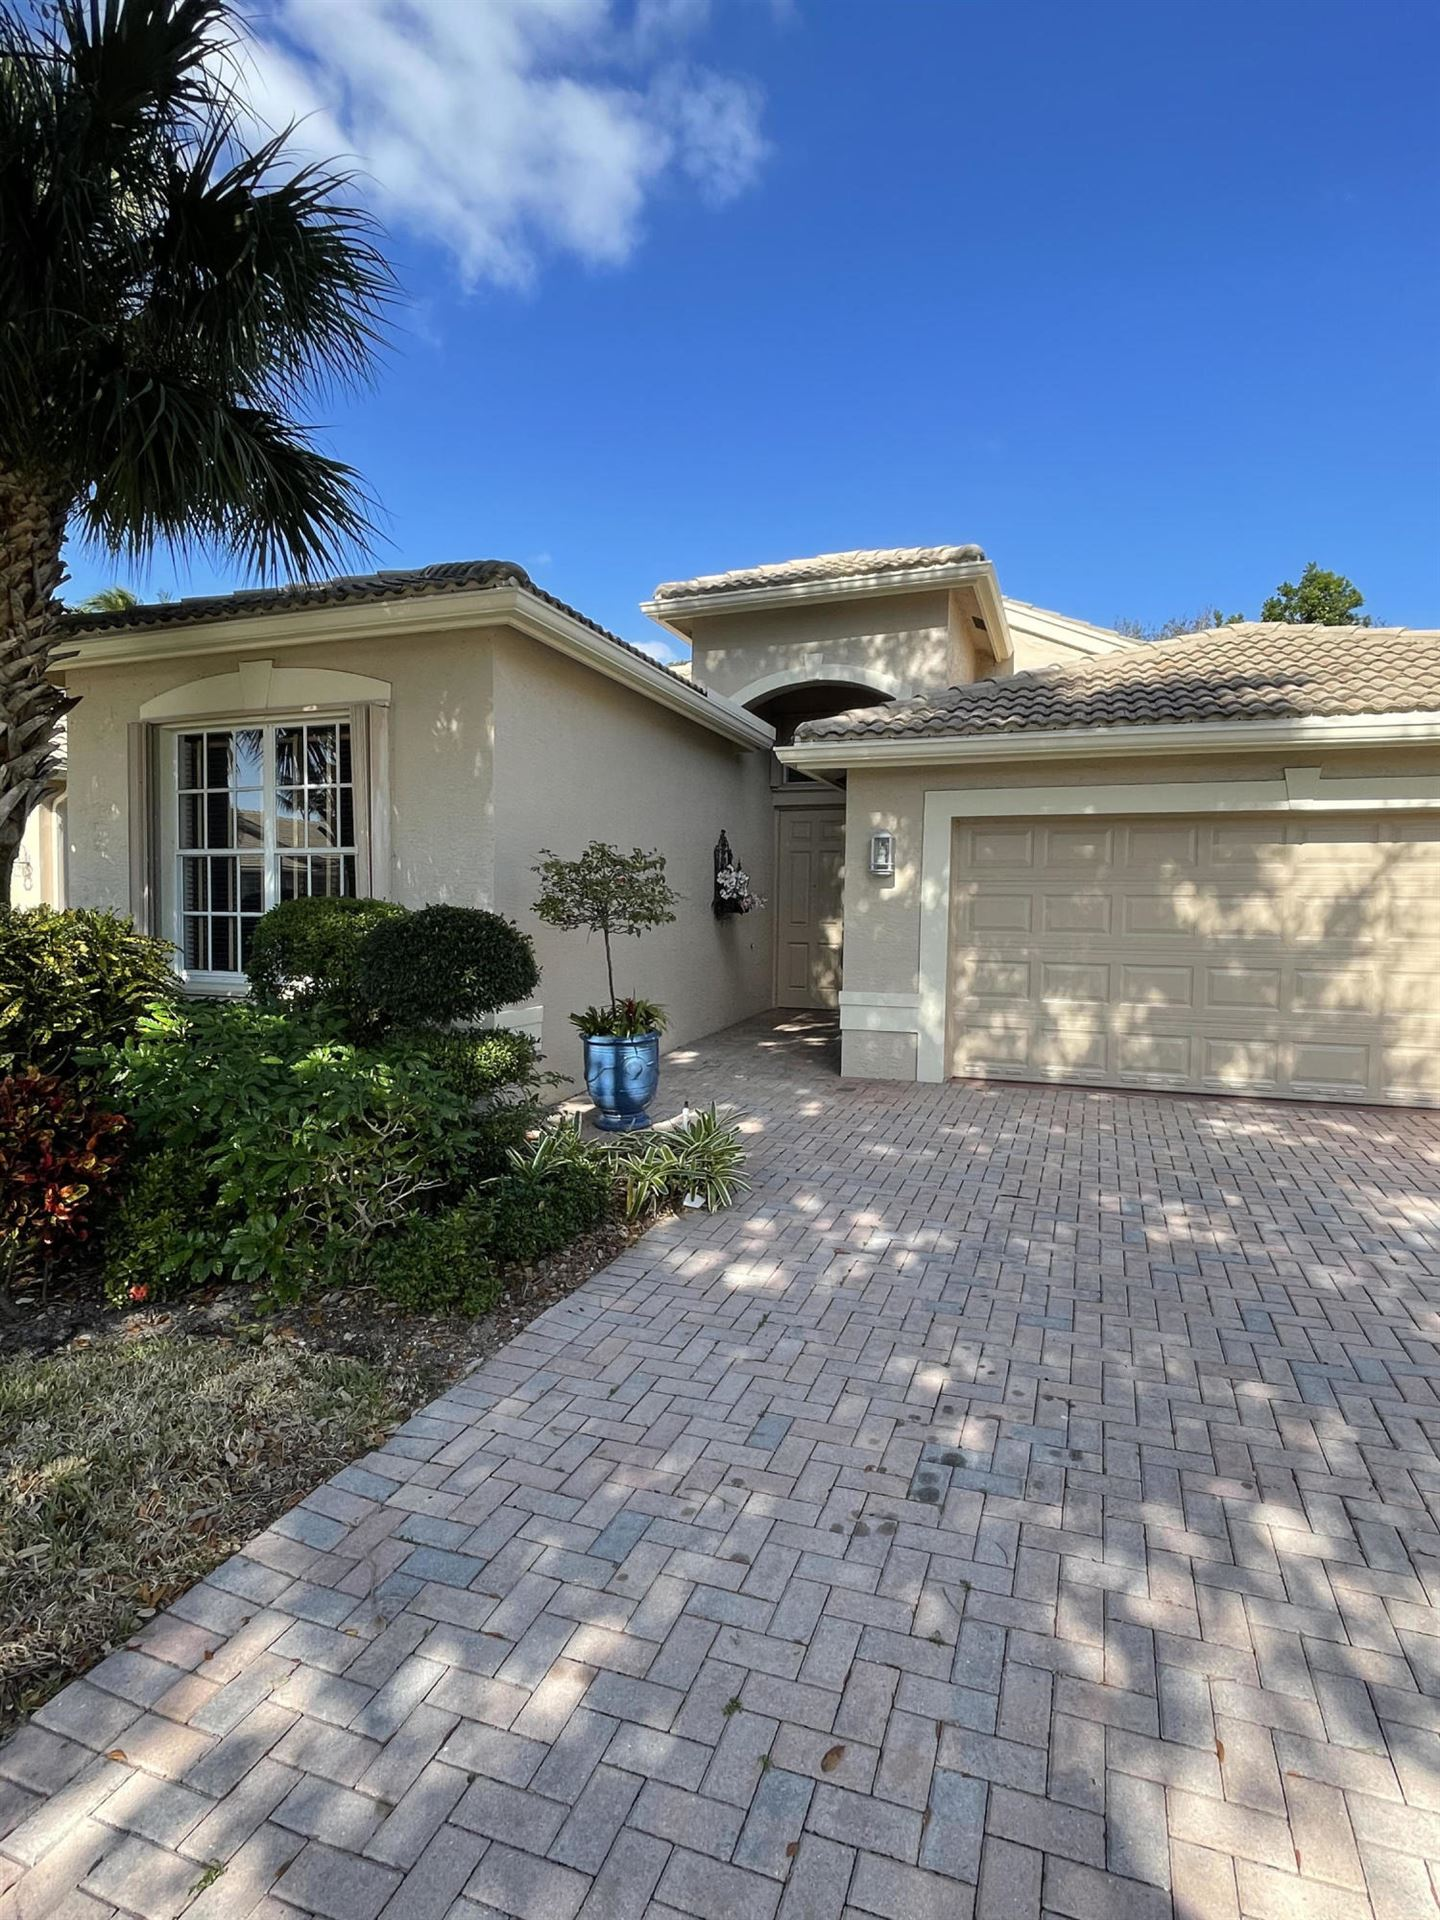 7299 Maple Ridge Trail, Boynton Beach, FL 33437 - #: RX-10679554